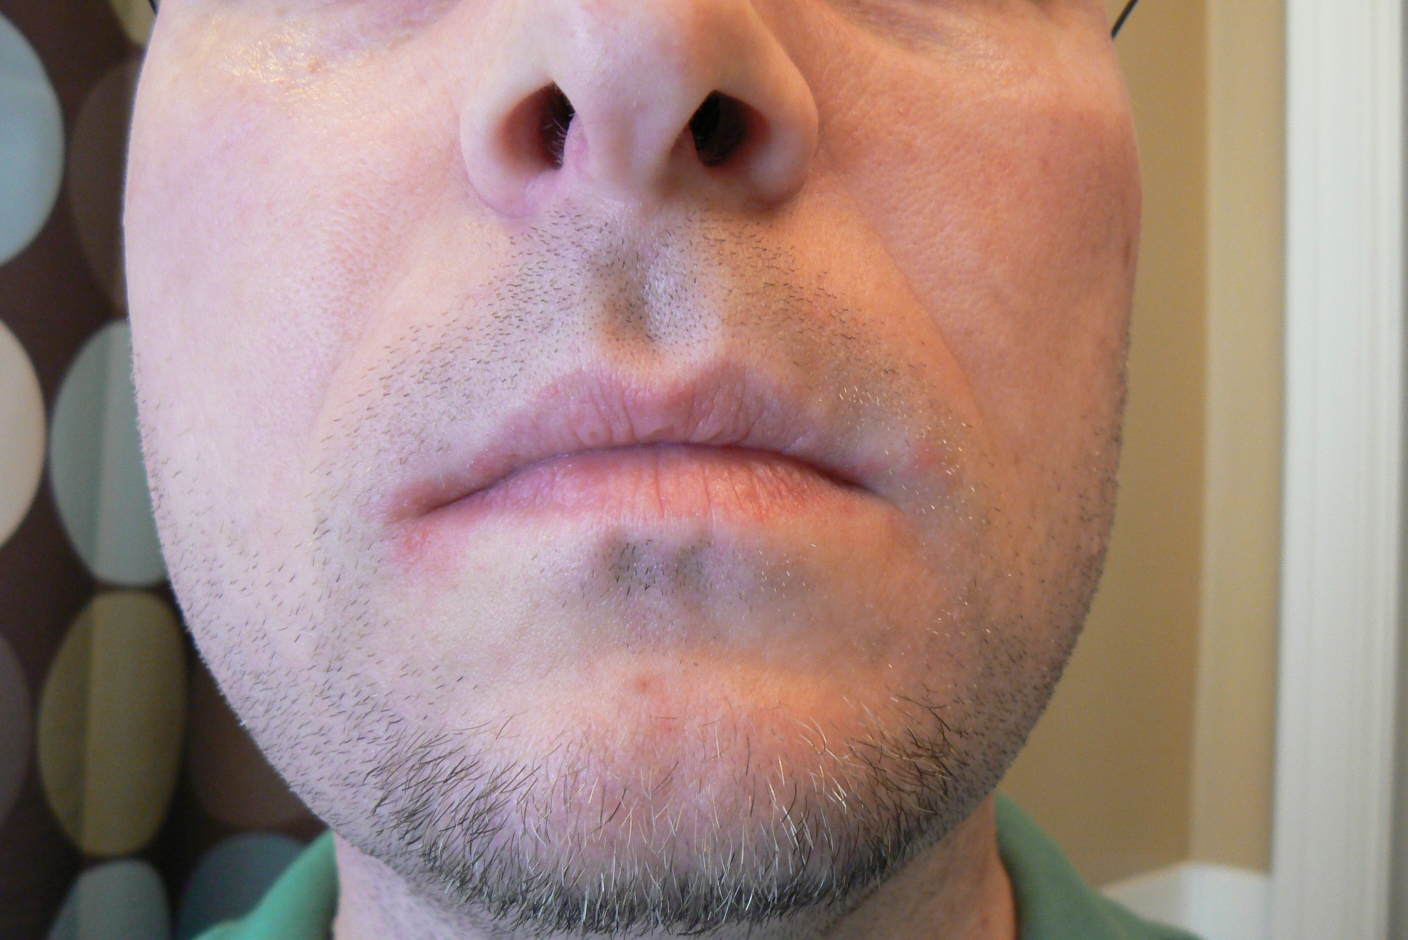 Corner Of Mouth Rash